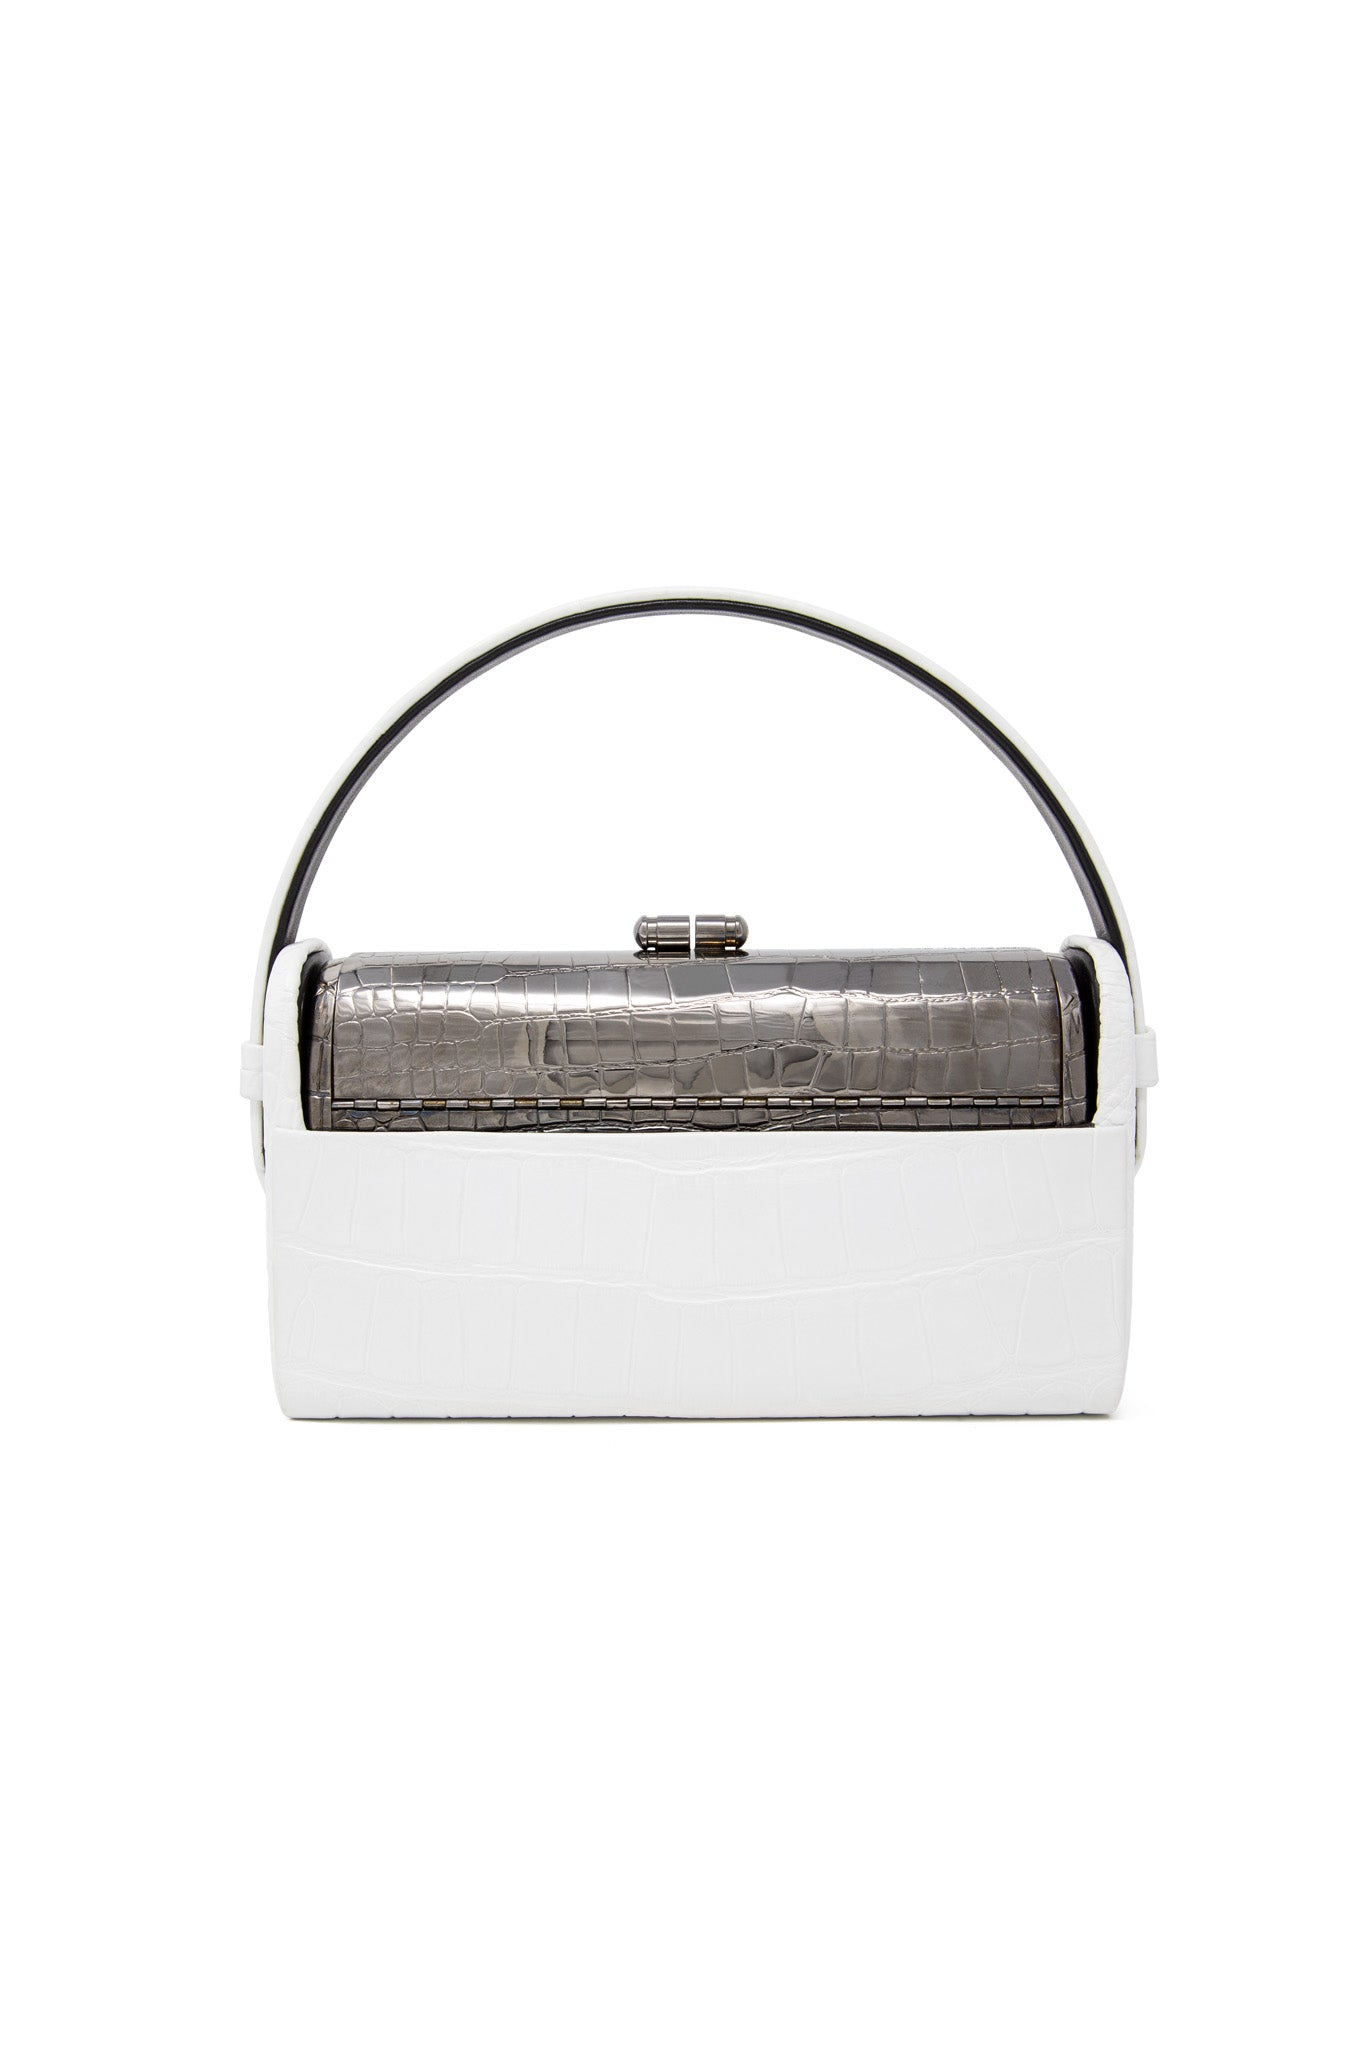 Gunmetal Croco Régine Minaudière with White Shiny Alligator Case